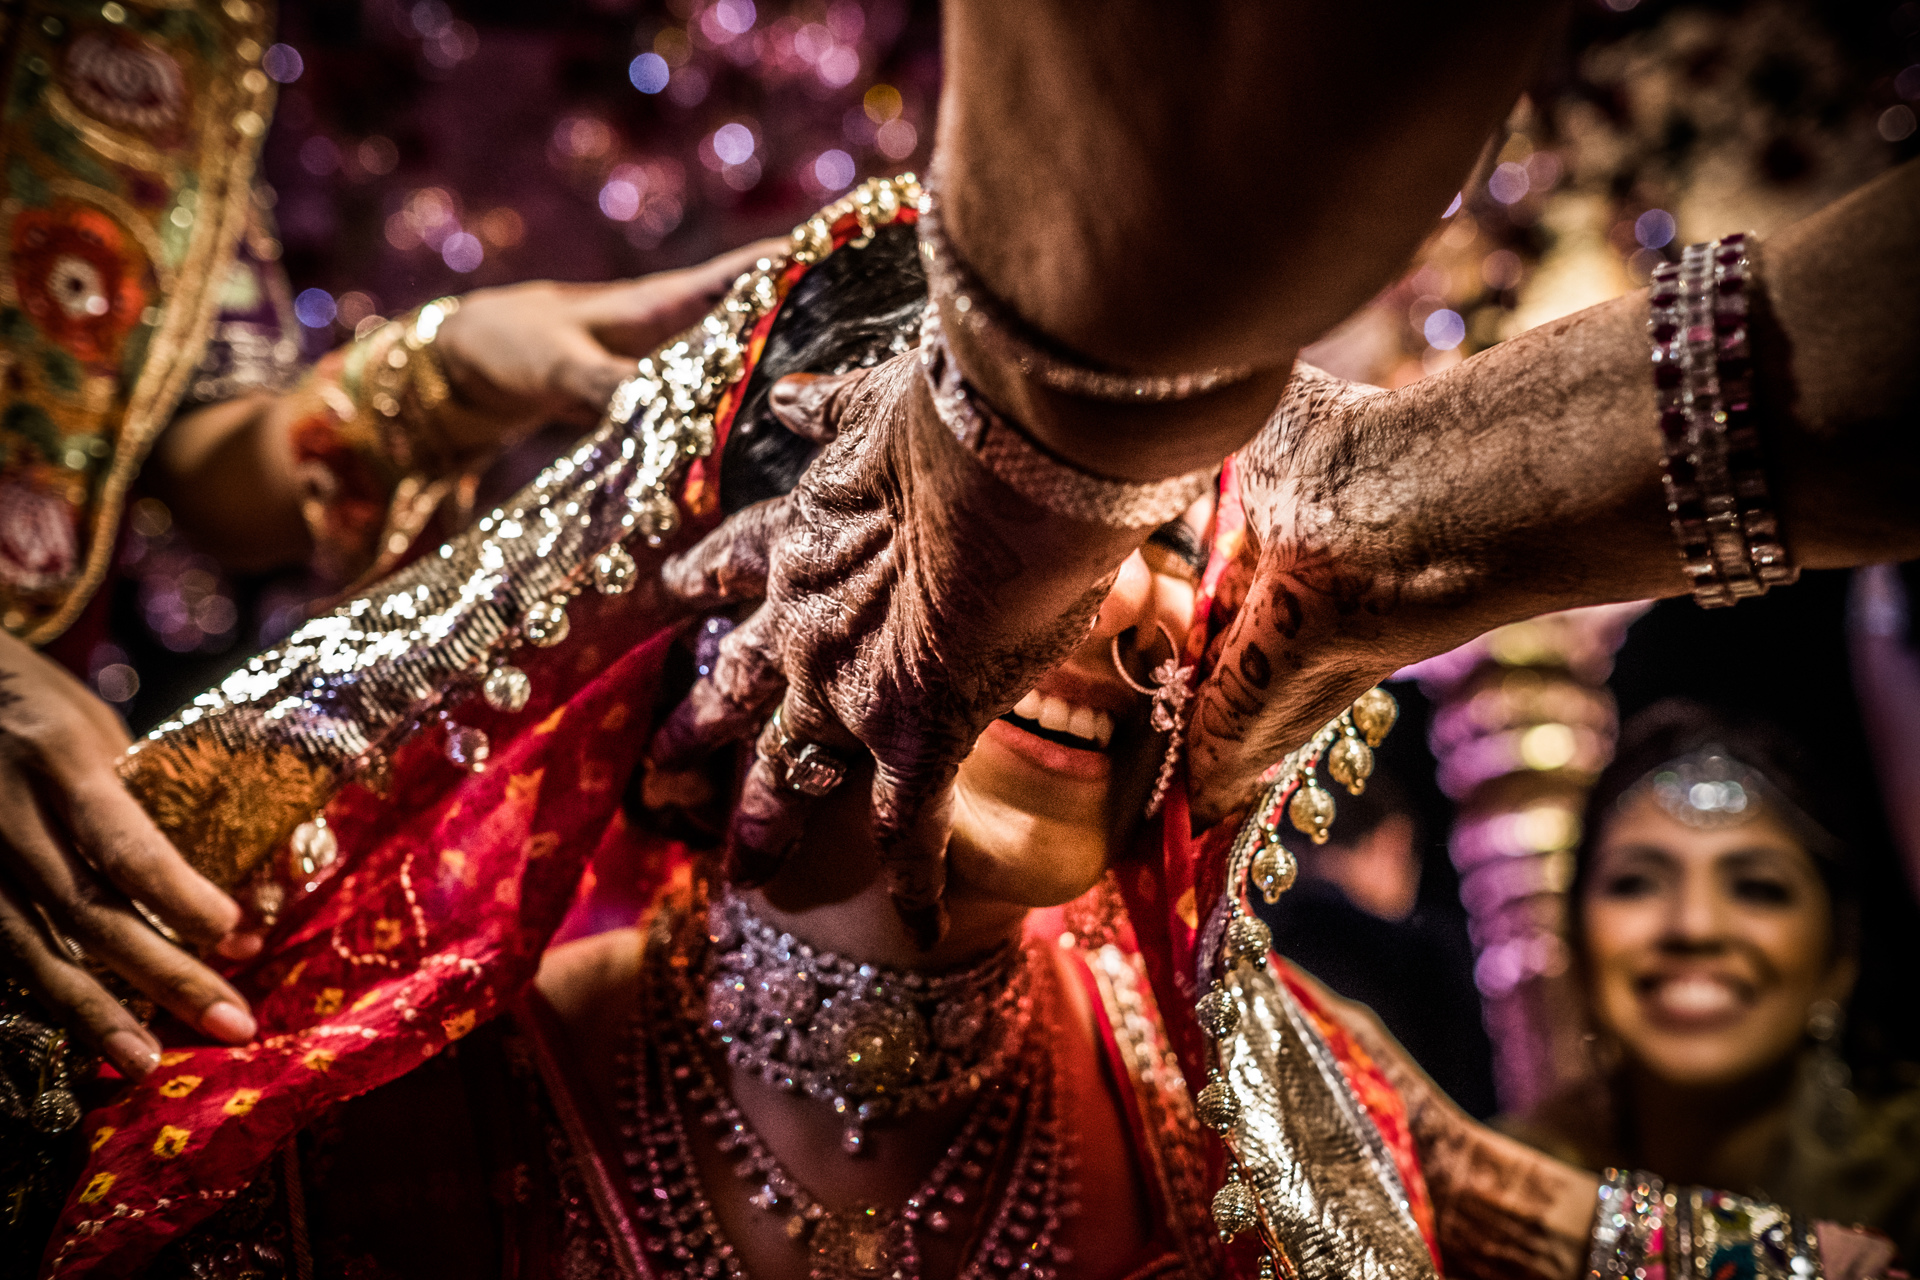 Indian bride receive belssimg during ceremomy - photo by Sephi Bergerson